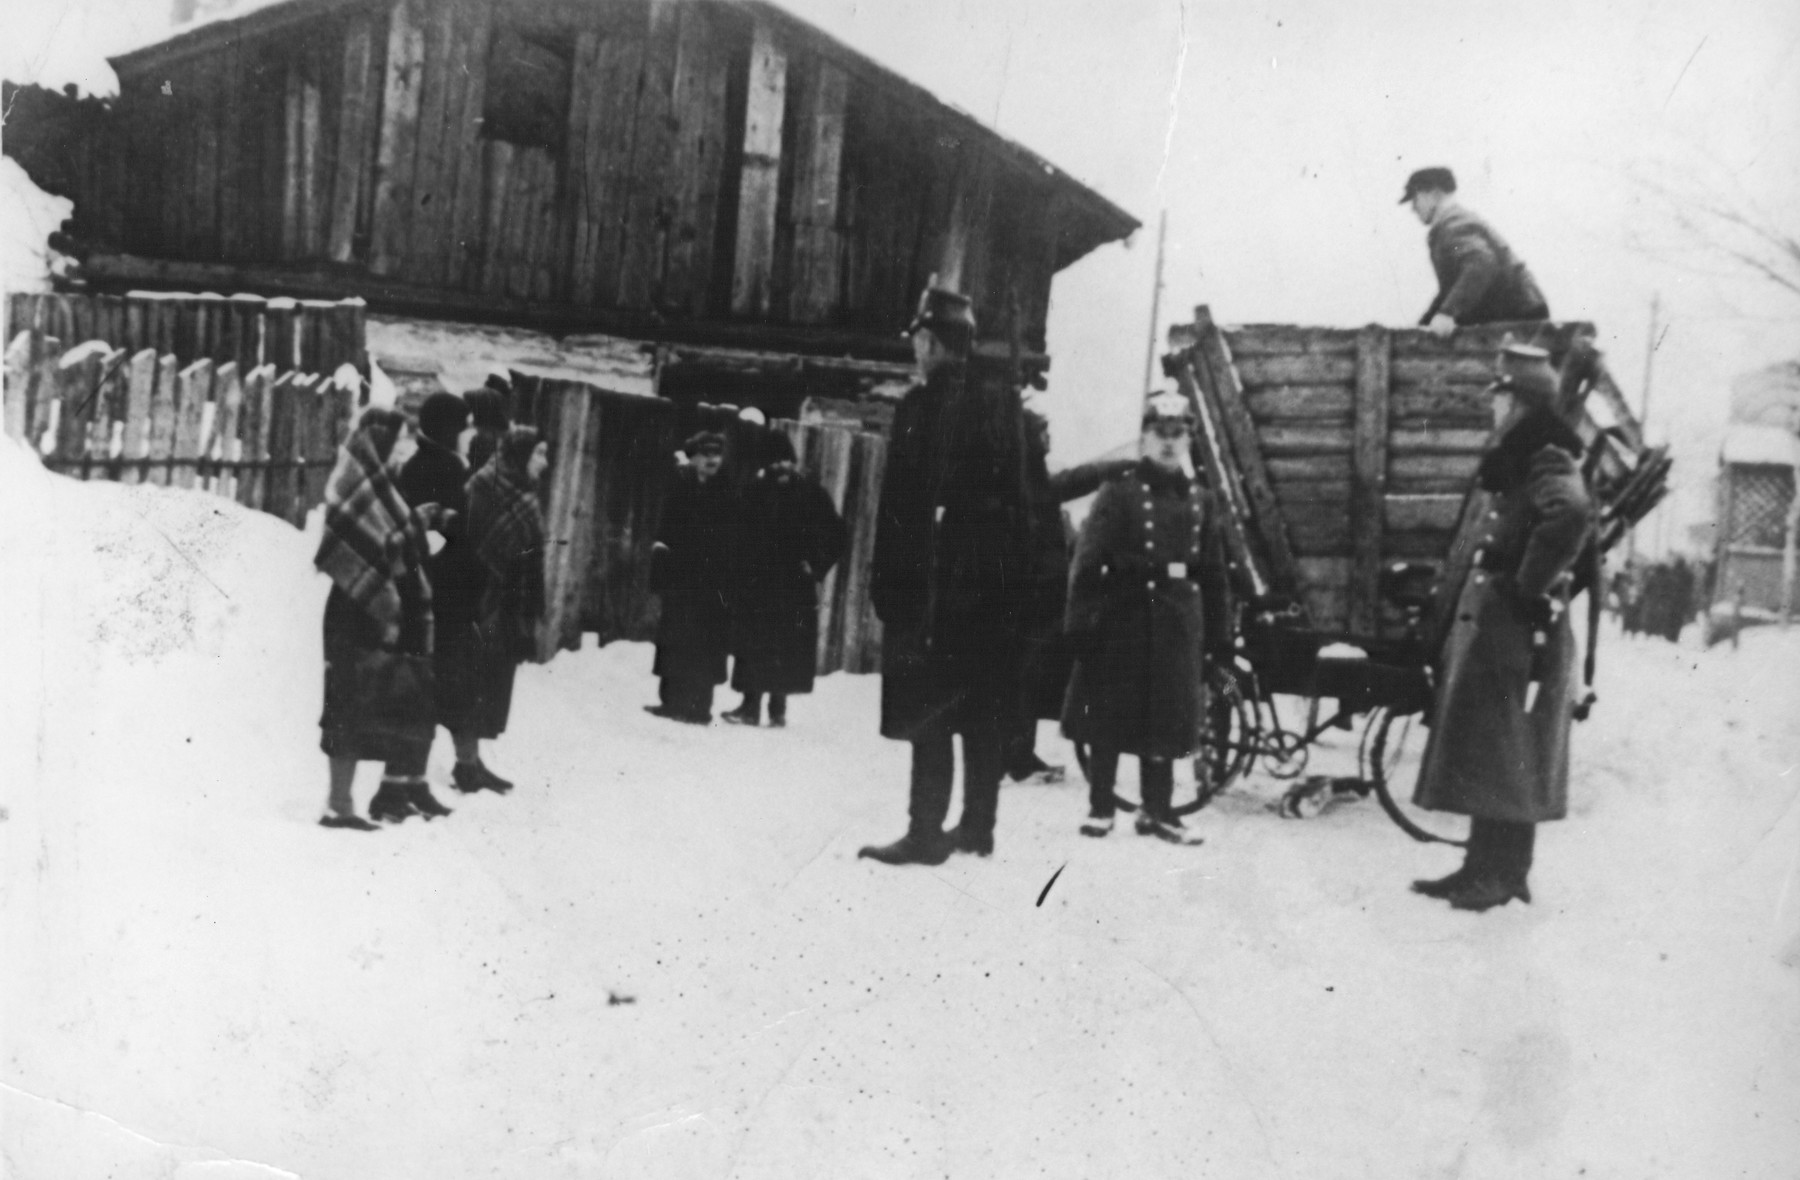 German police round-up Jews for deportation from the Zawiercie ghetto.